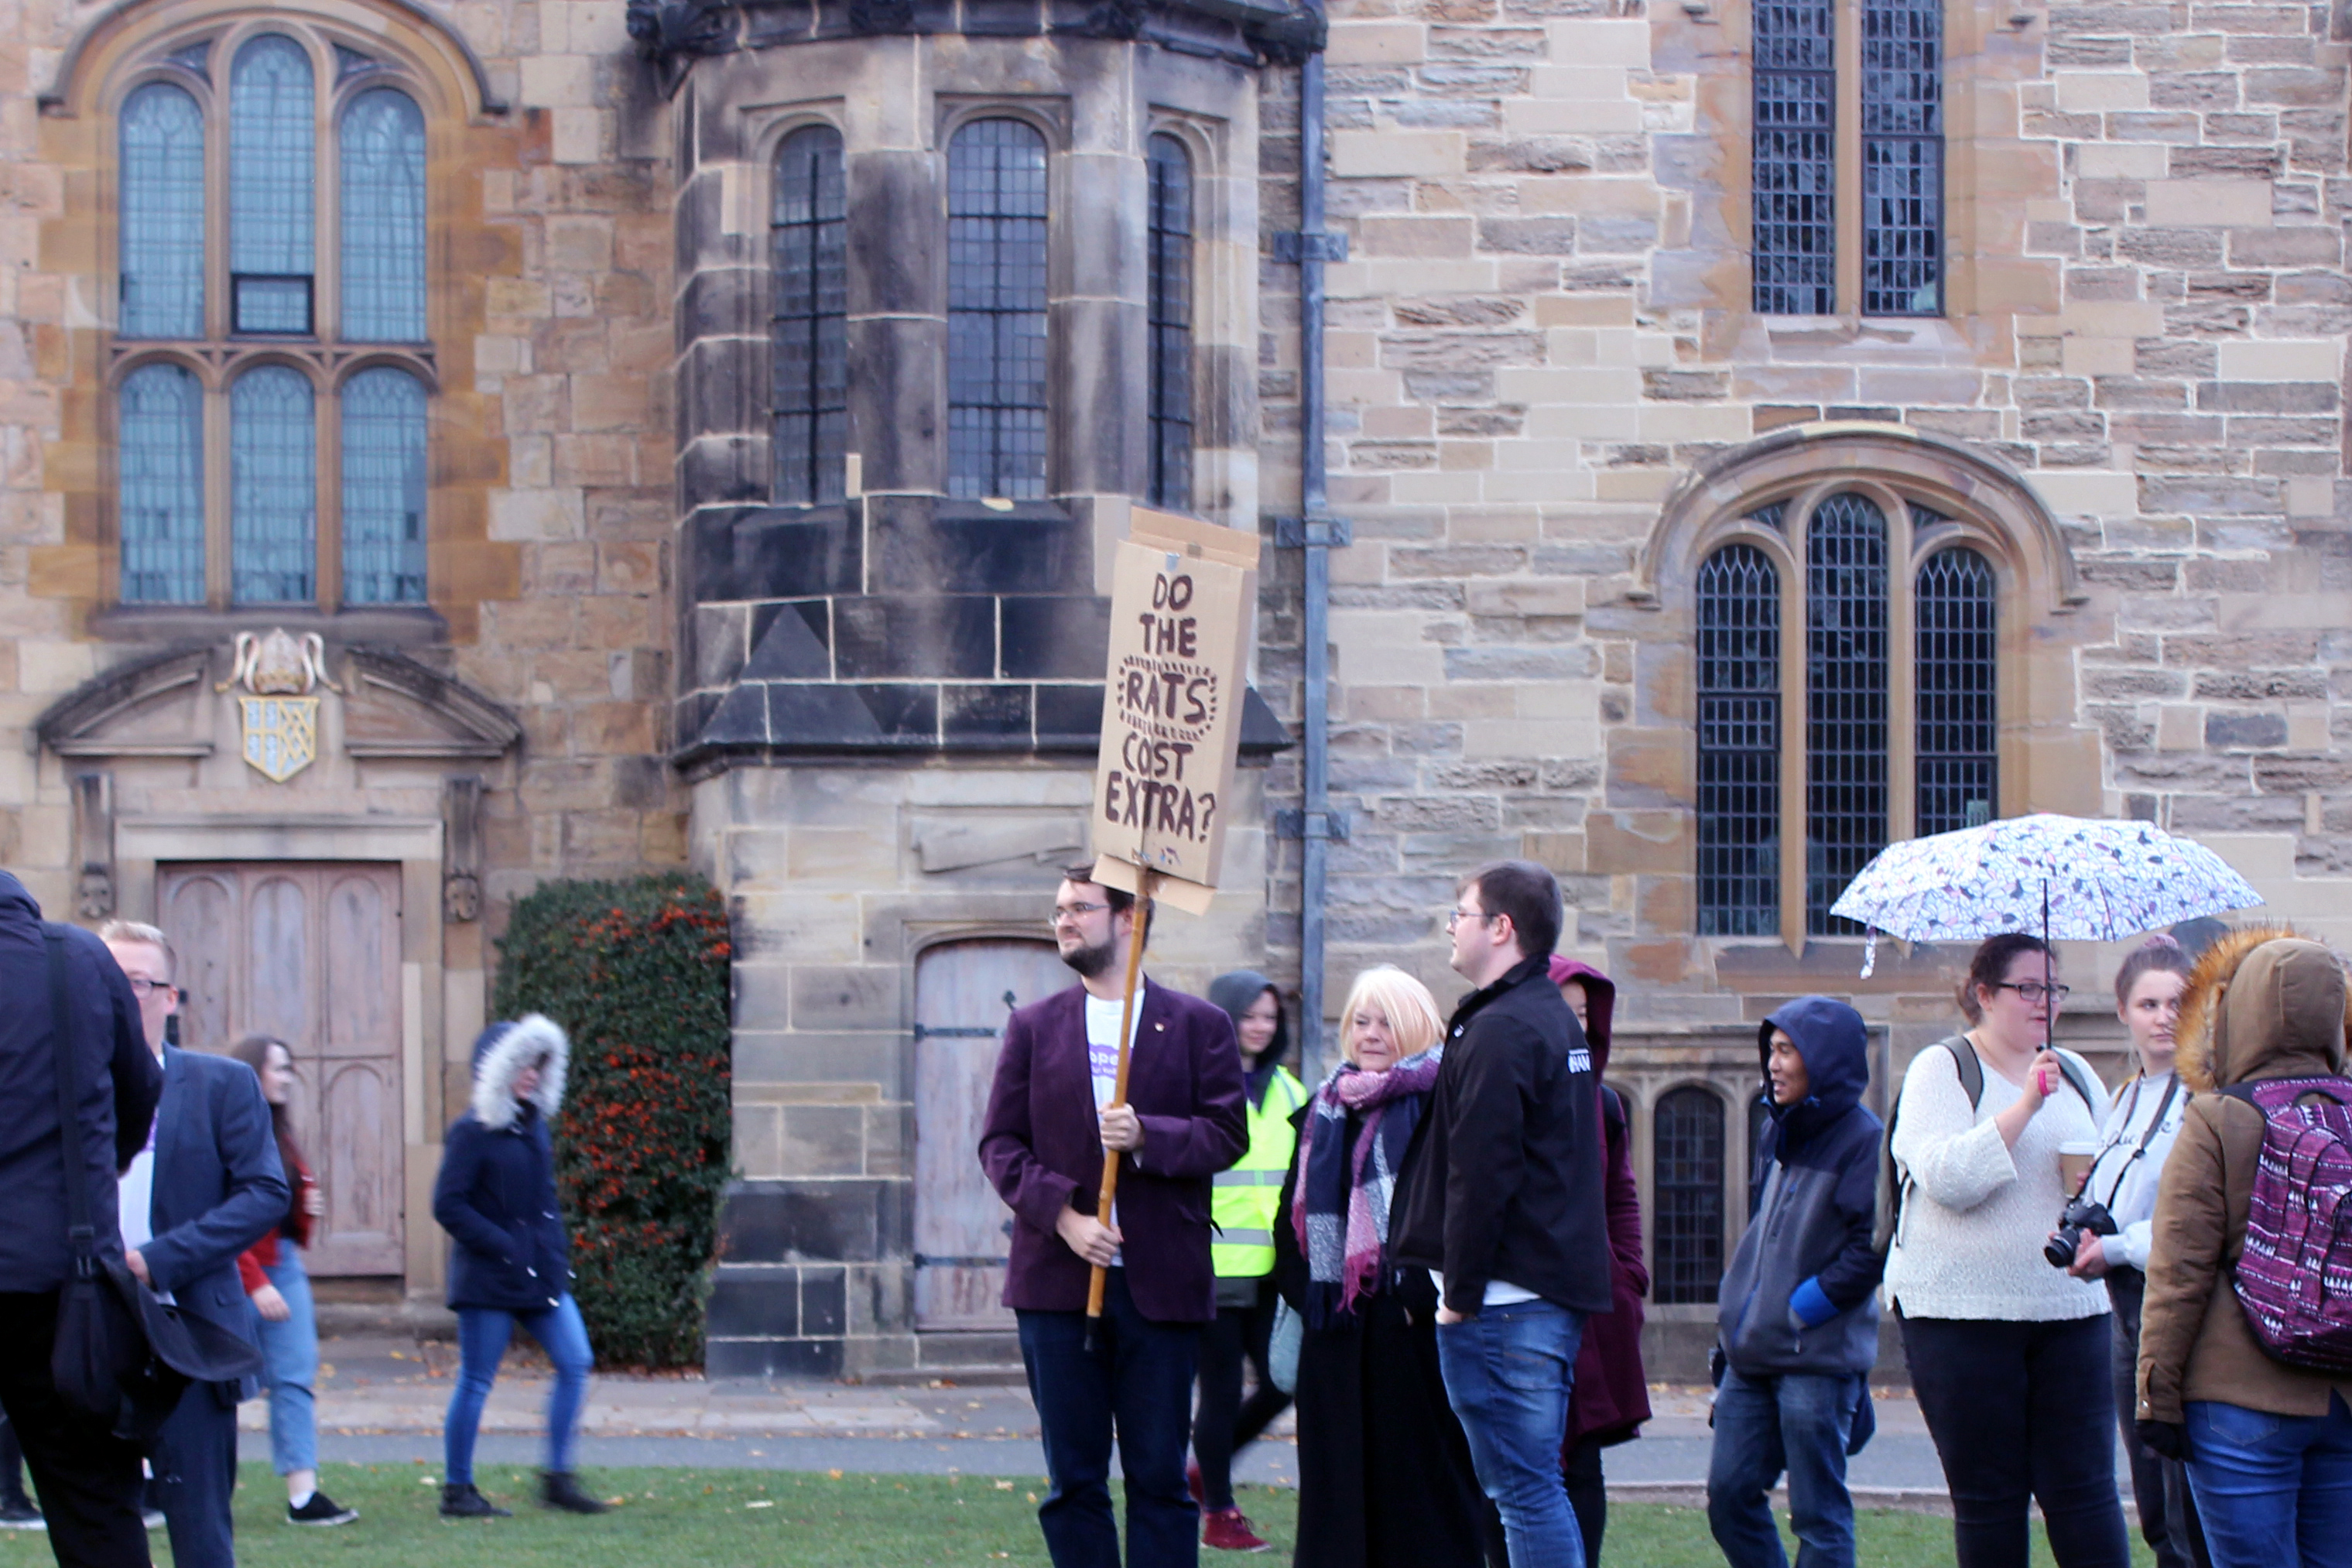 Student protesting cost of living in durham